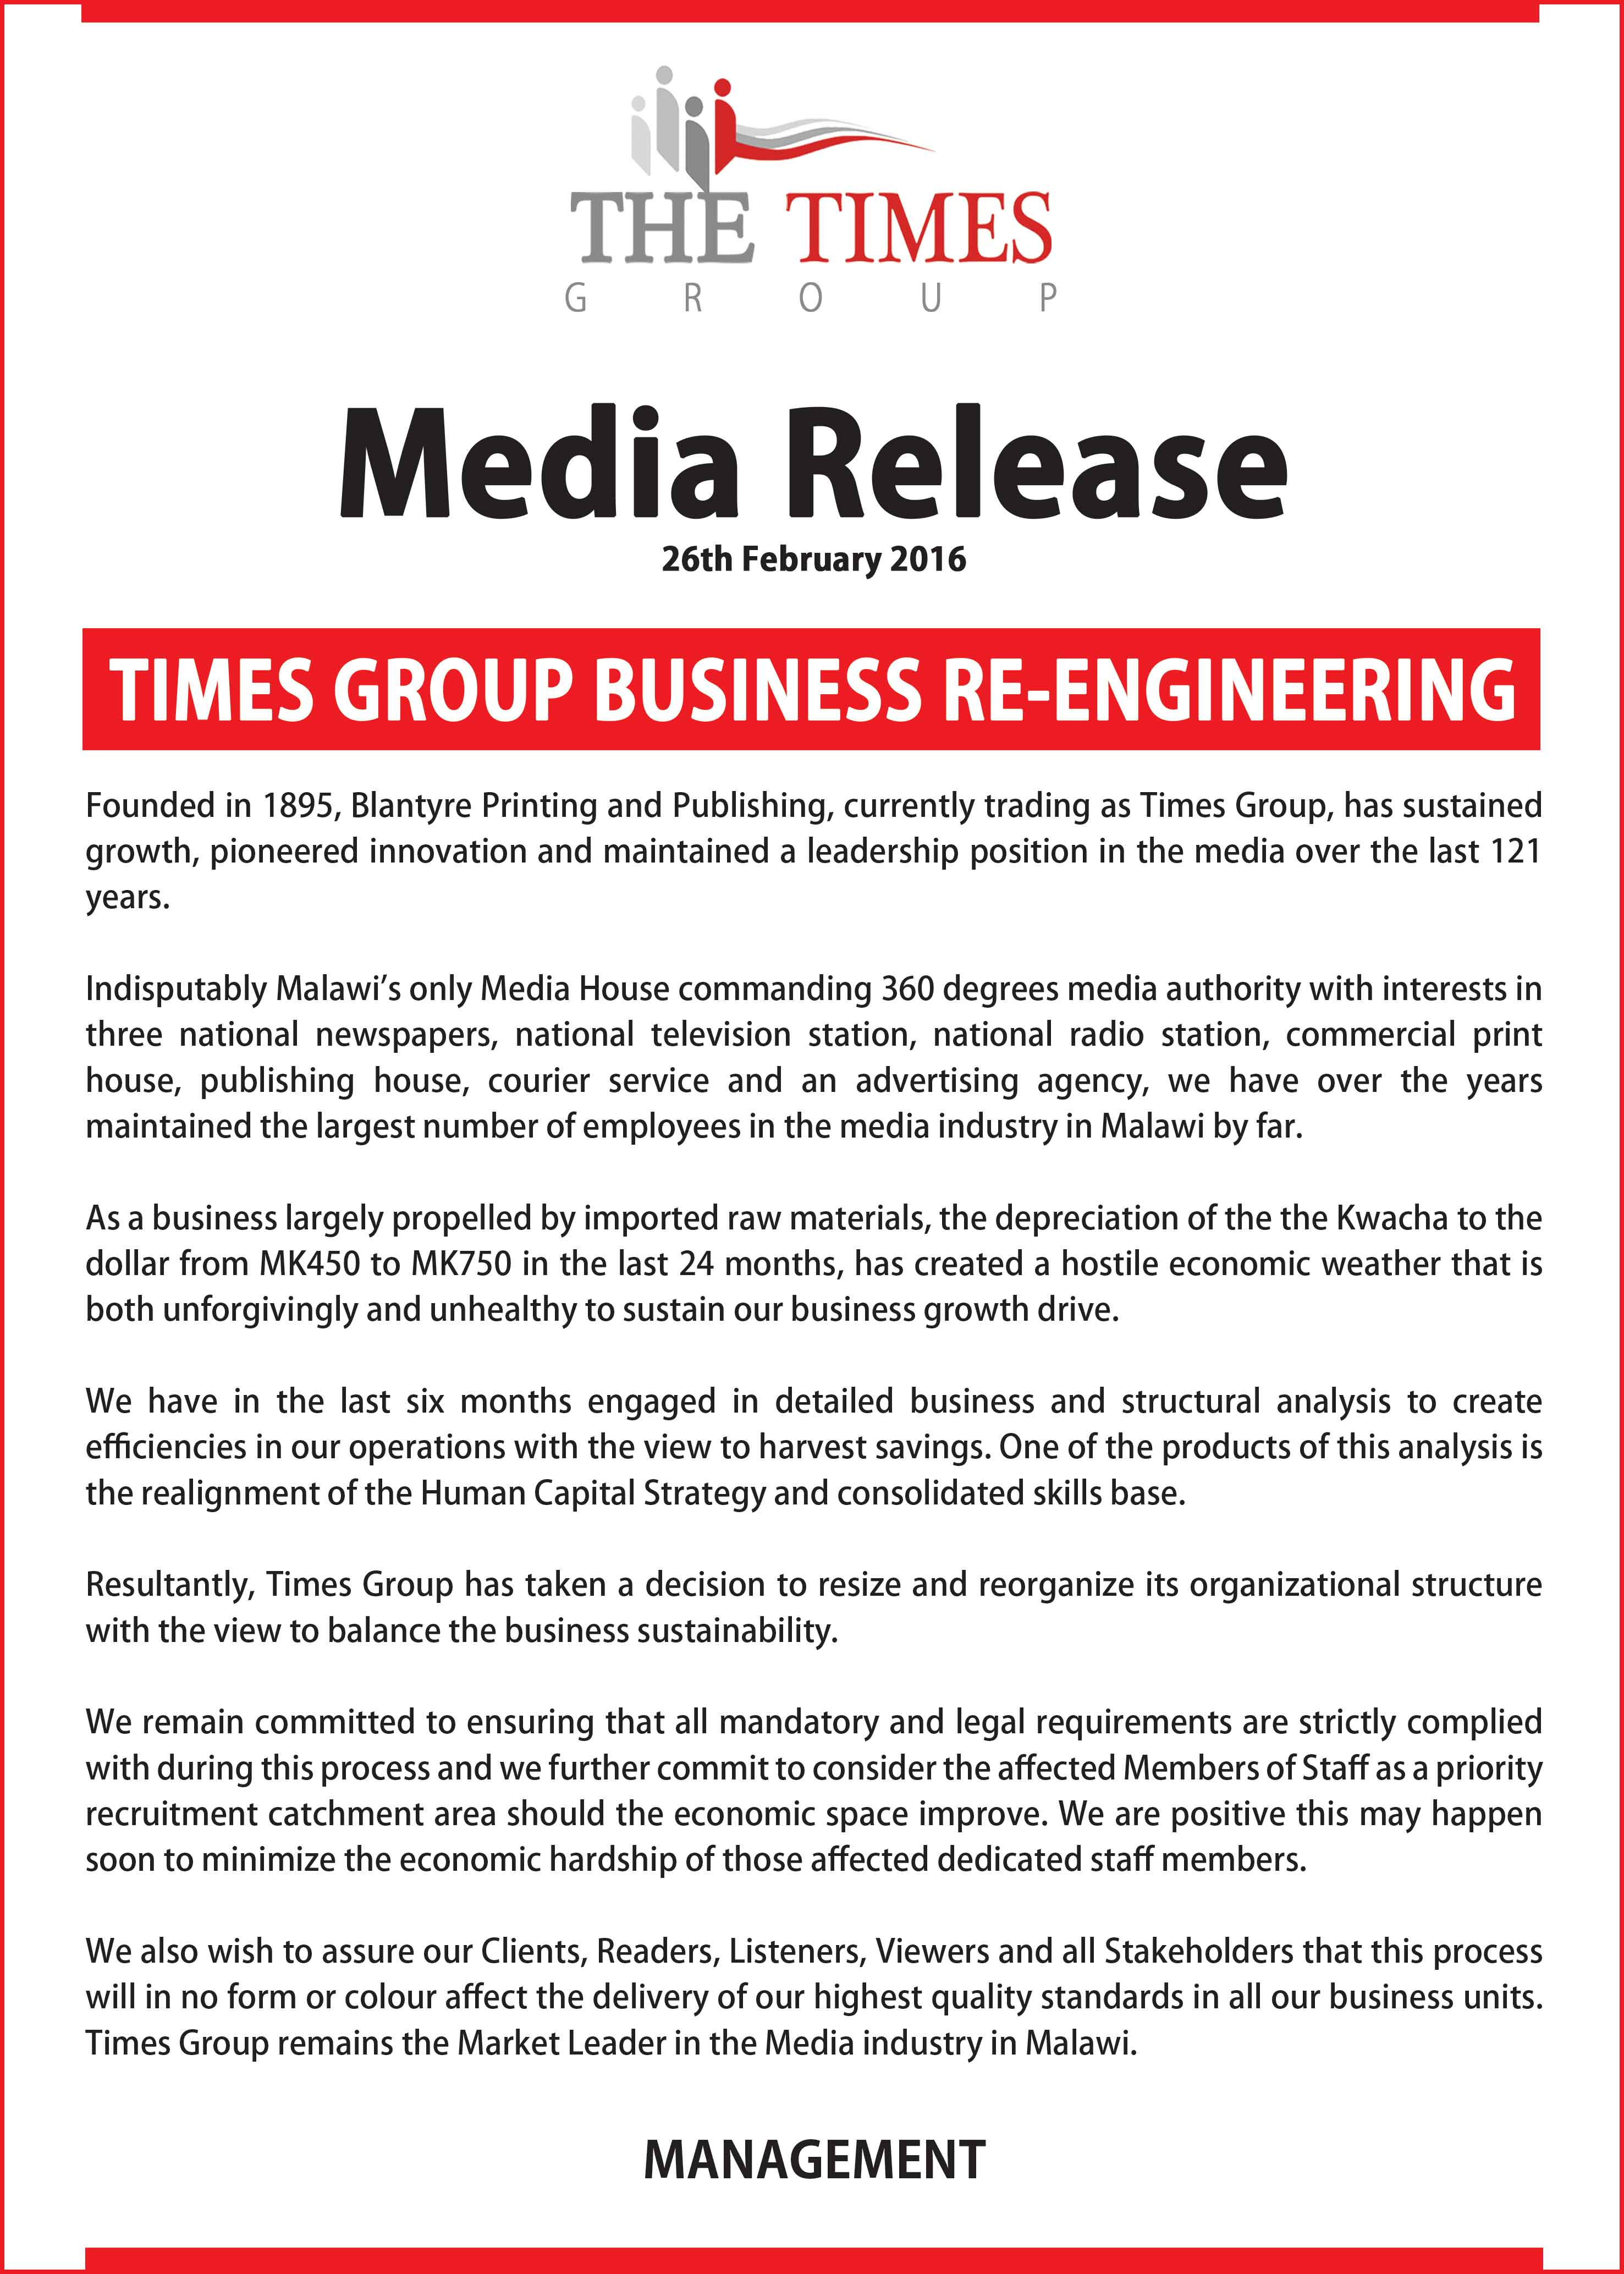 The times group times media release altavistaventures Gallery